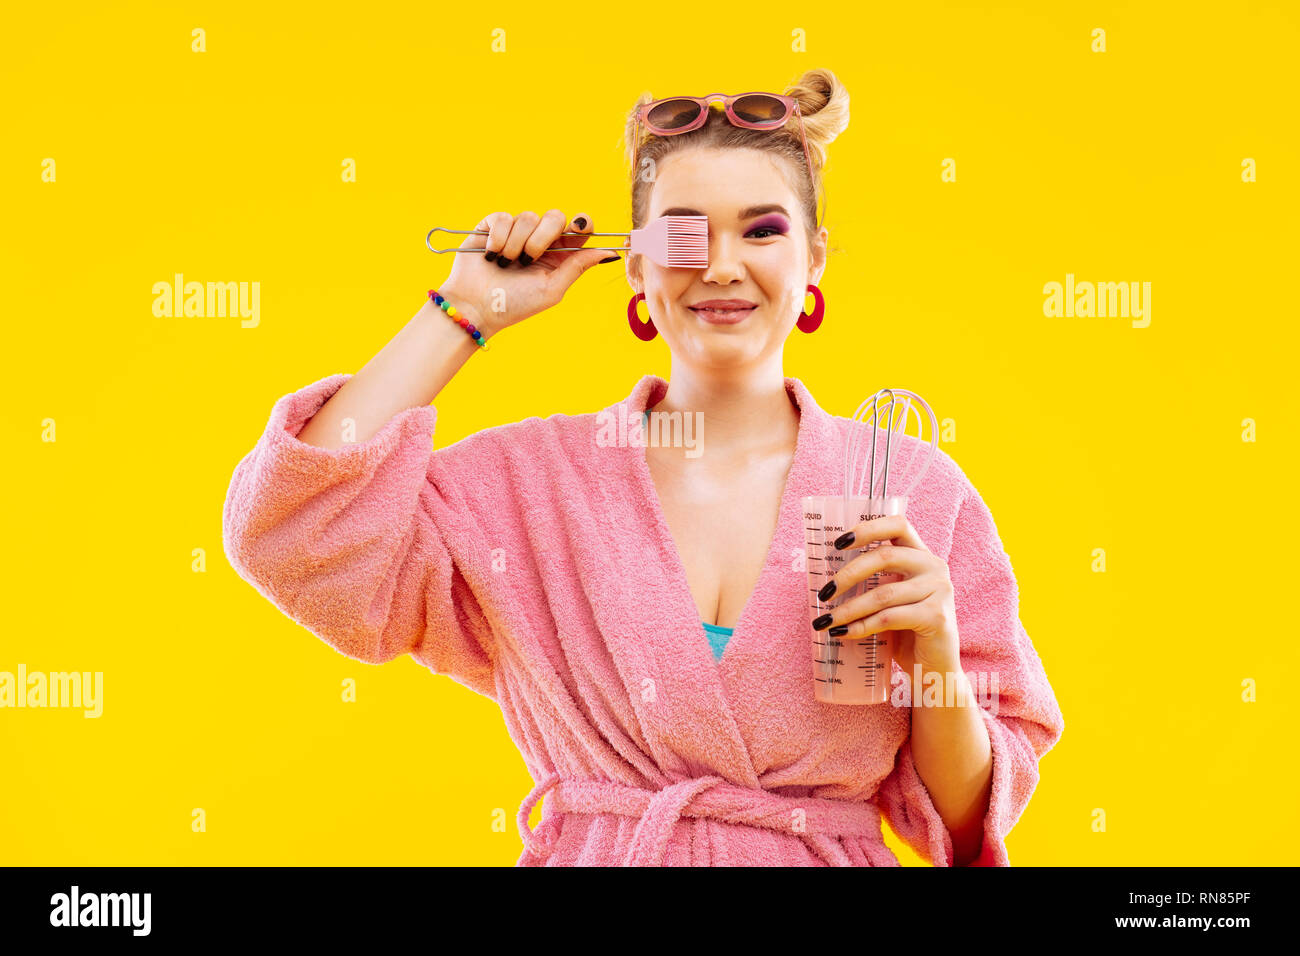 Housewife wearing bathrobe holding kitchen utensils before cooking - Stock Image